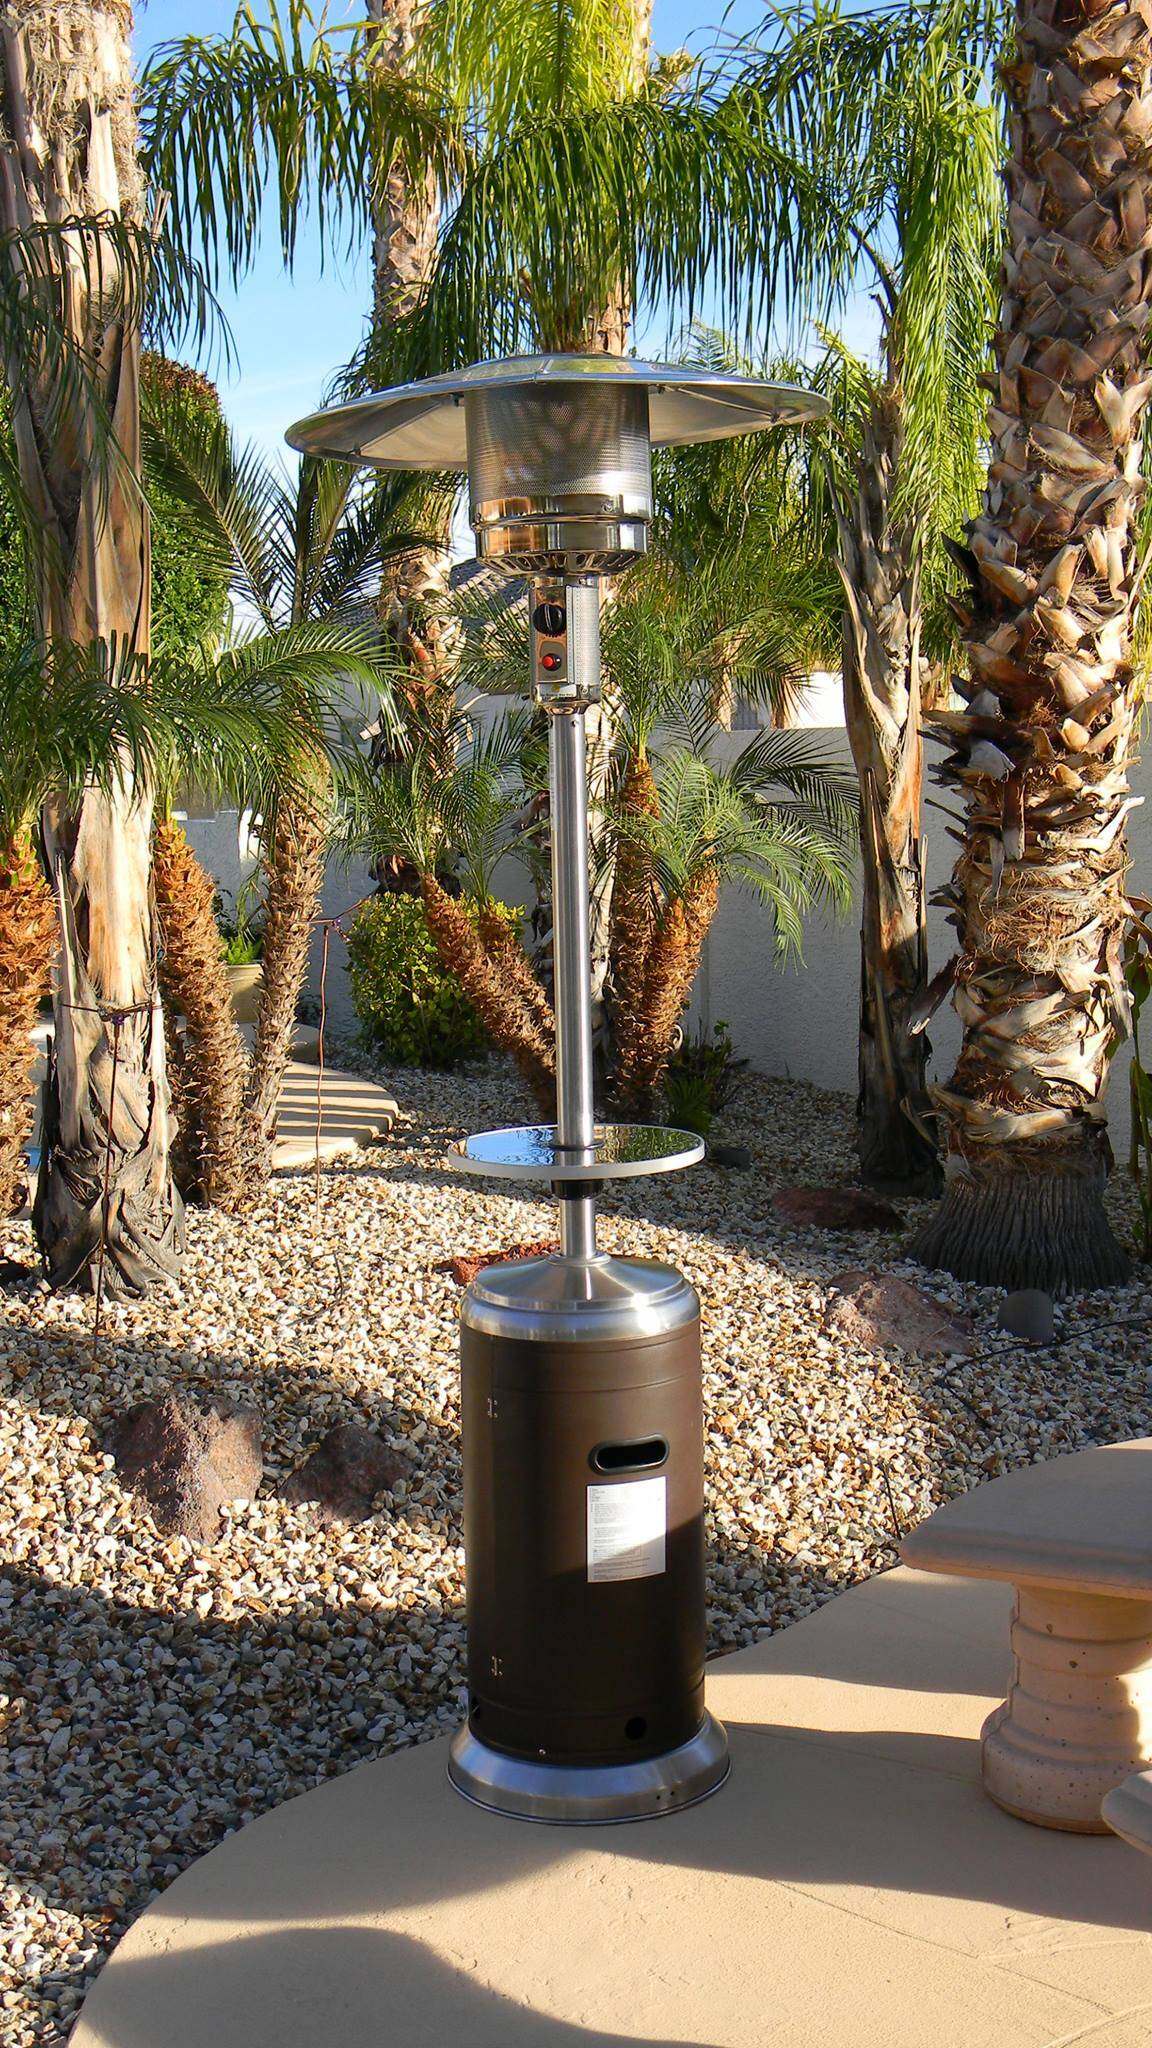 87 Tall Stainless Steel And Hammered Bronze Outdoor Patio Heater